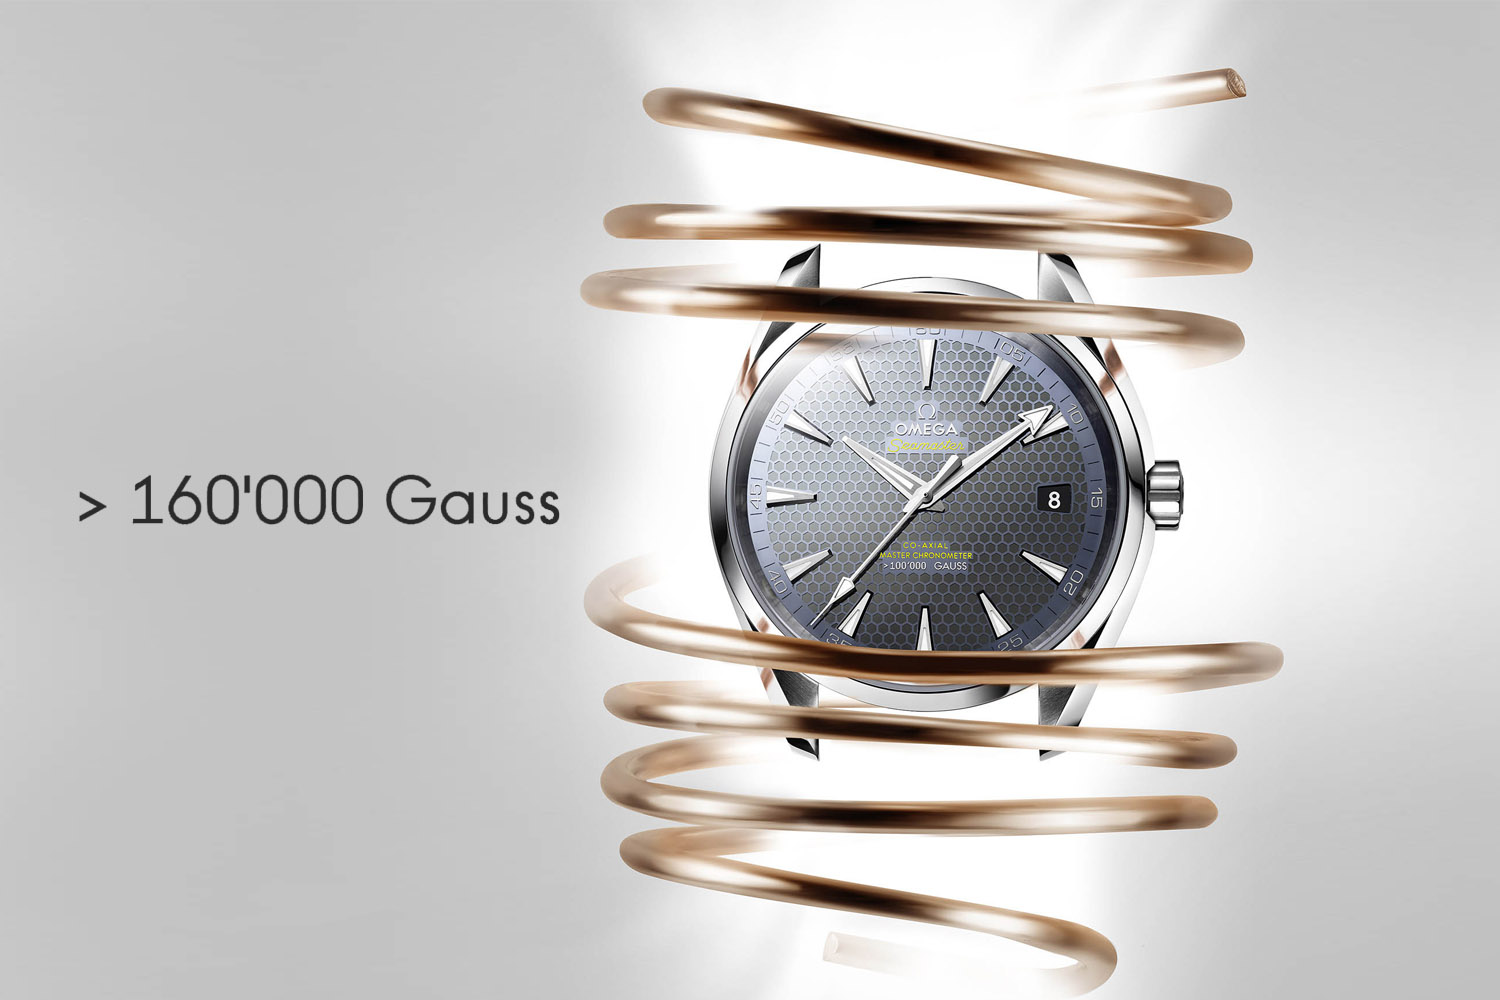 STORY – That Time OMEGA Tested a Prototype Seamaster At An Insane 160,000  Gauss Magnetic Field…